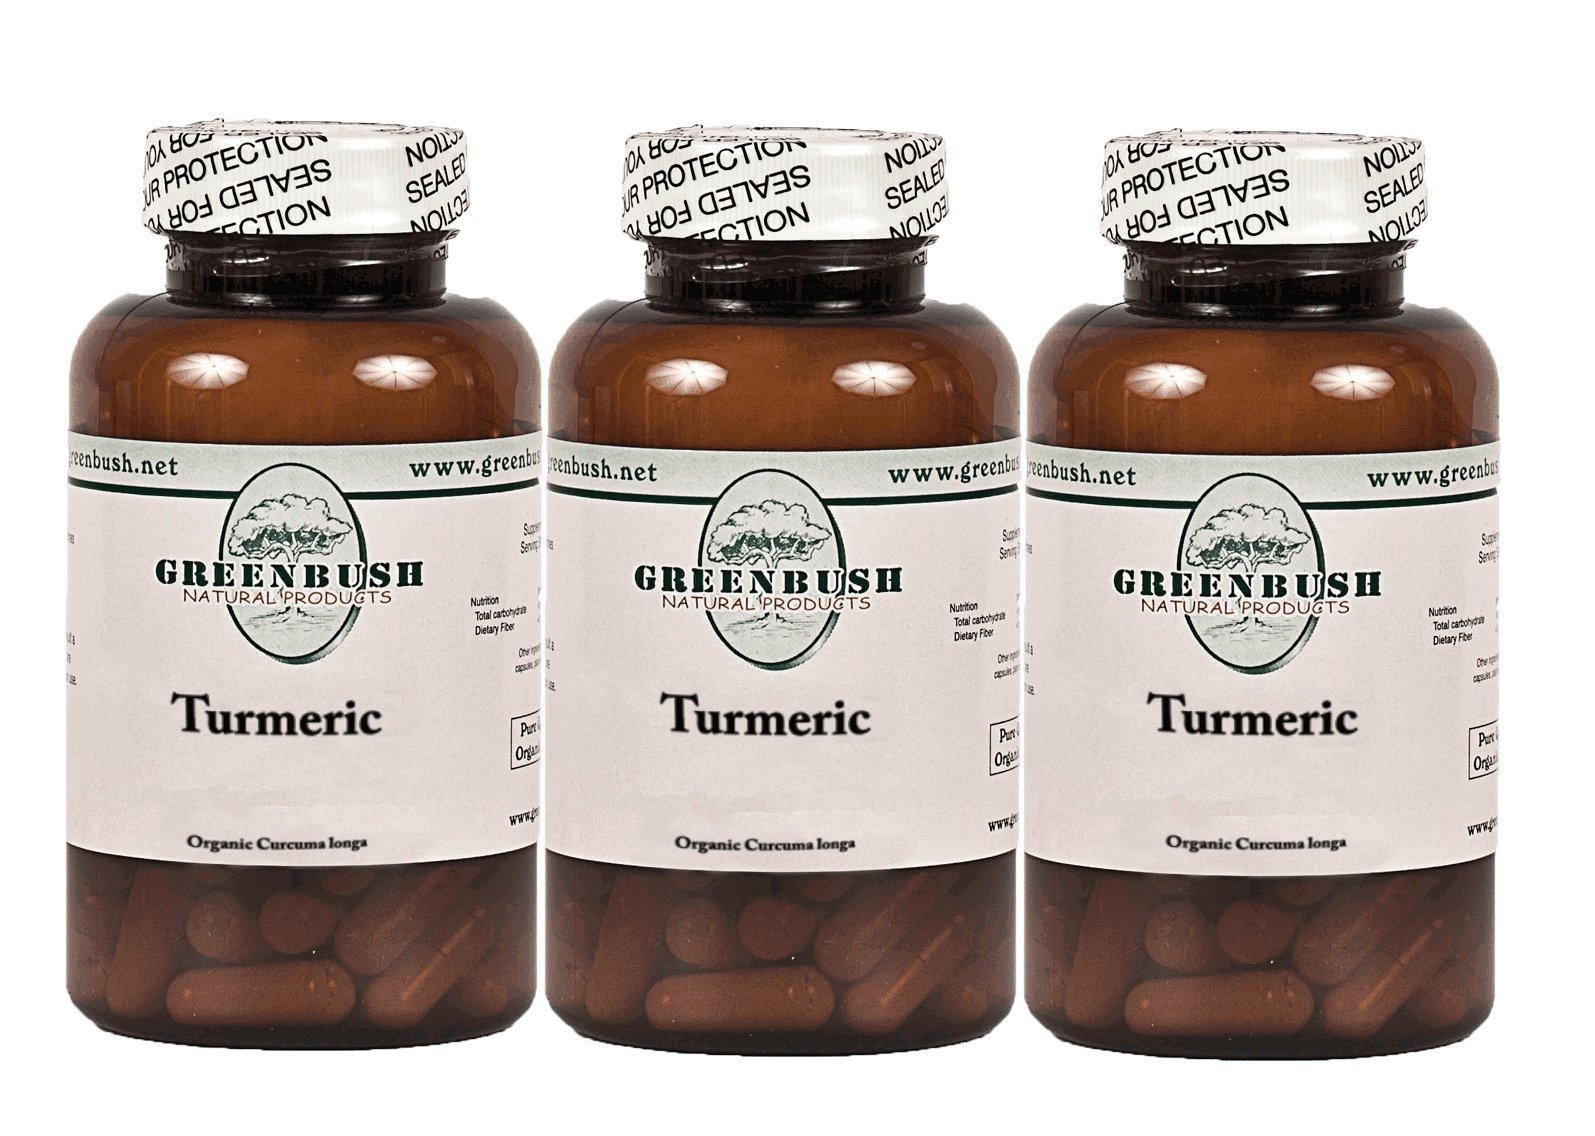 3 Bottle Pack Organic Turmeric 100 Pure Vegetarian Capsules 575mg total. Top Quality, No Additives. Curcumin For Support of Pain, Inflammation, Mental clarity and Cognitive Support in the Elderly.